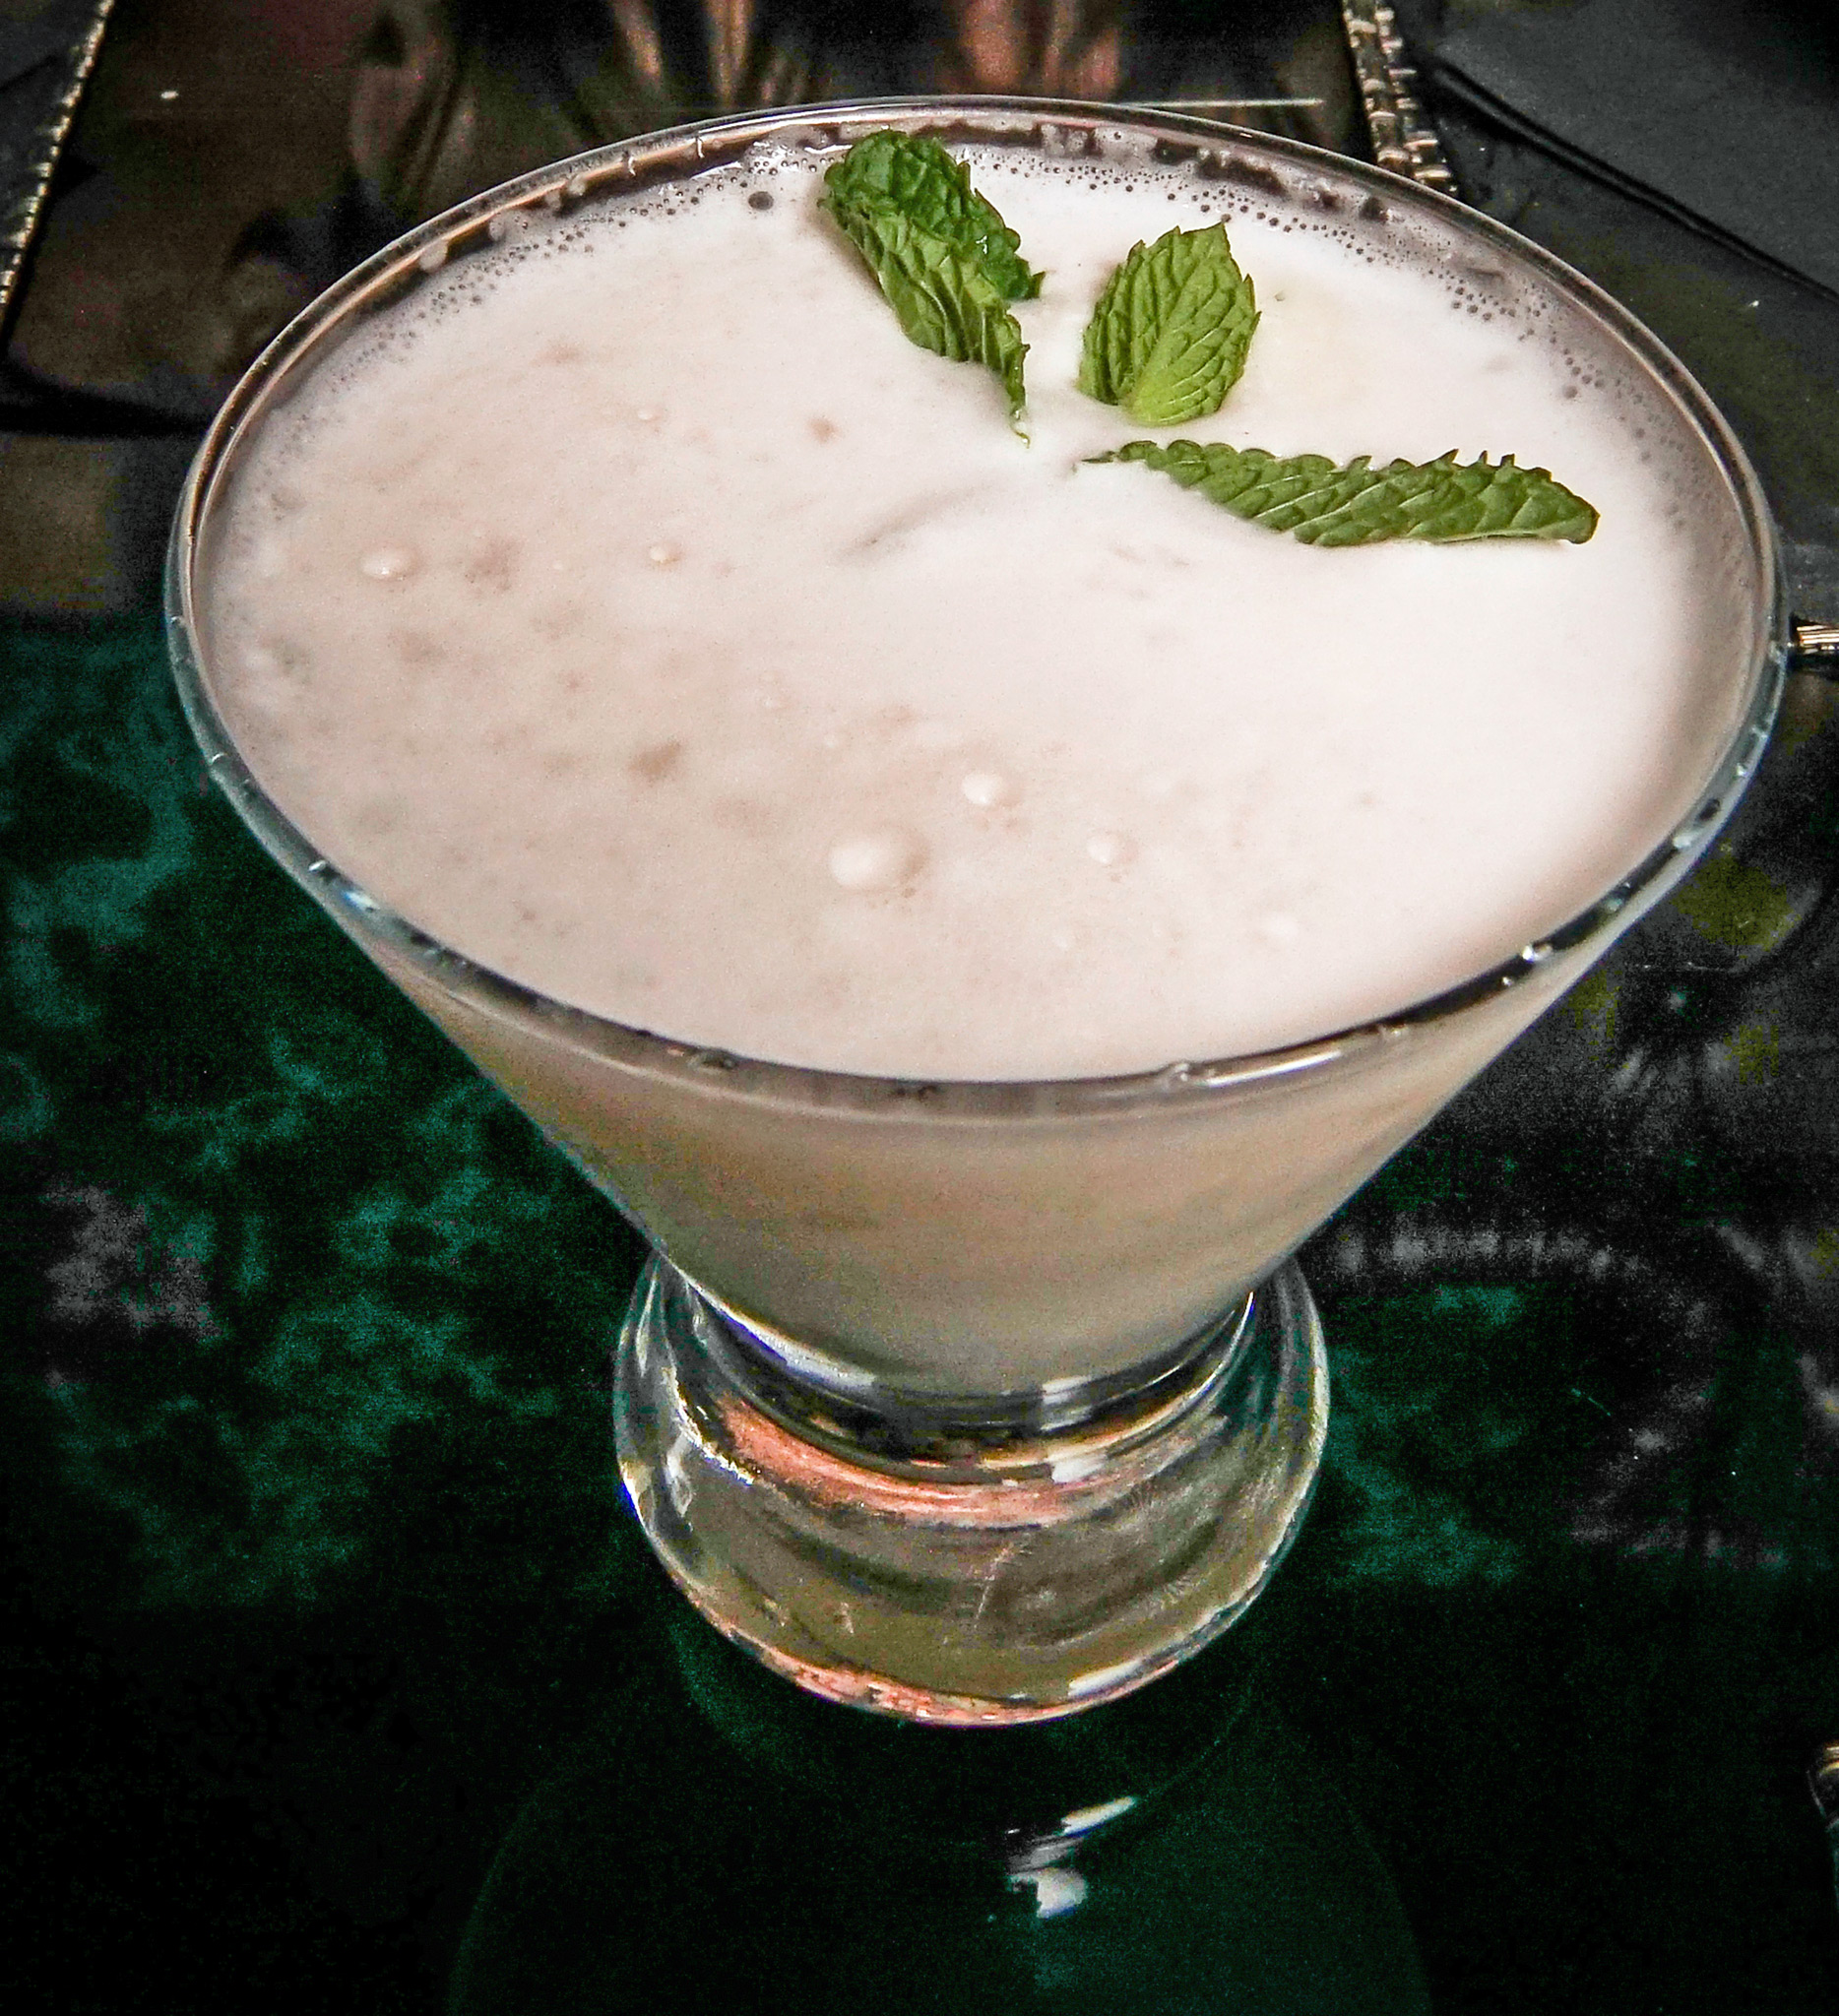 Irish Grasshopper - jameson black barrel whiskey, marie brizard white creme de cocoa, marie brizard green creme de menthe & heavy cream garnished with a mint sprig